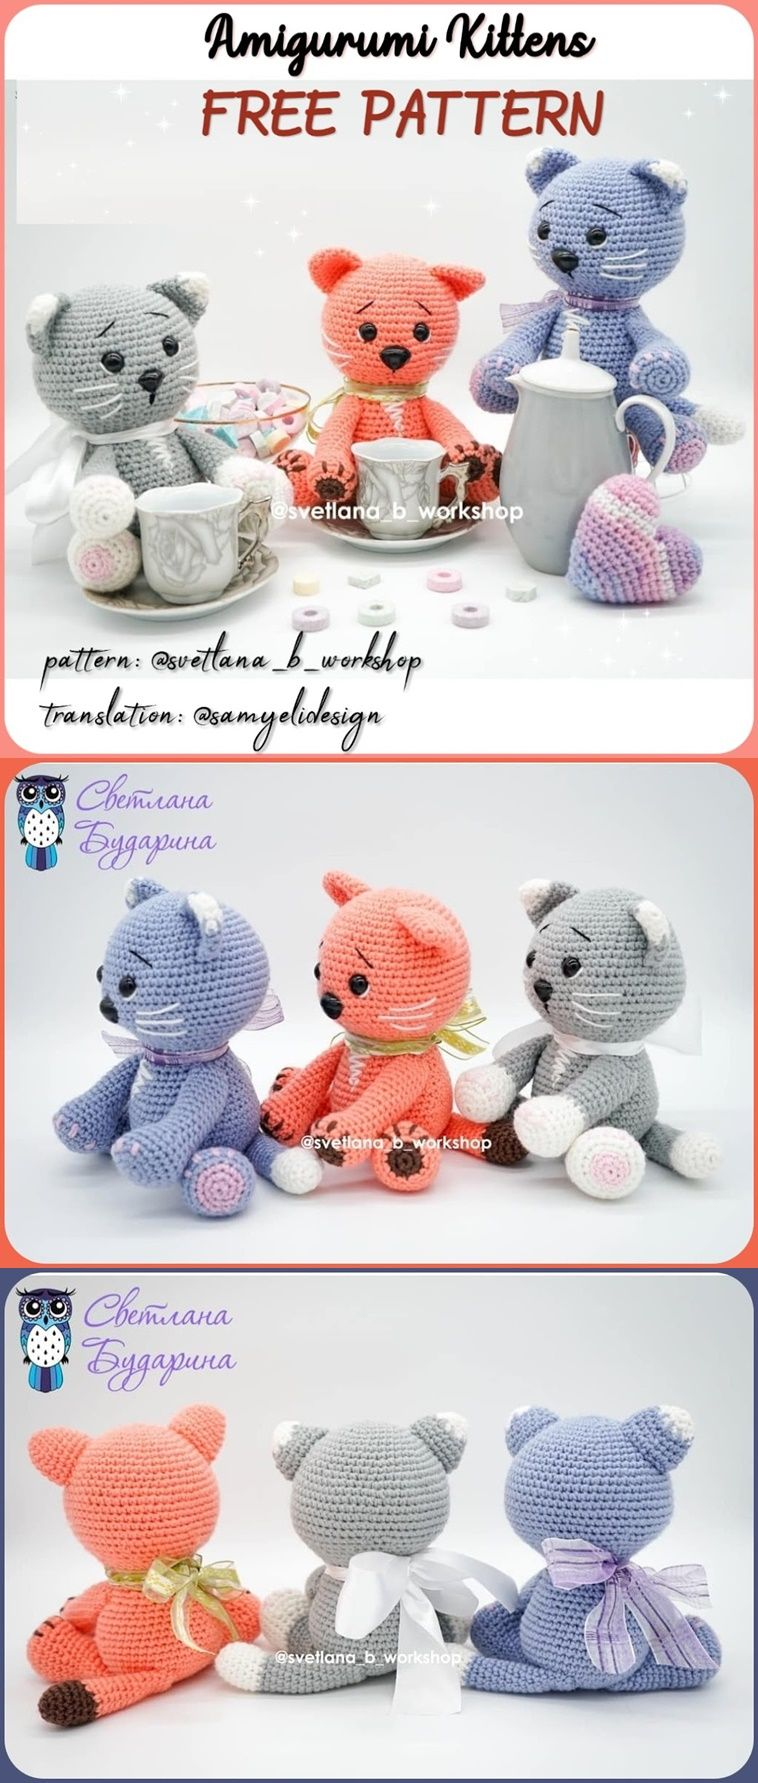 Amigurumi Kittens Free Pattern Crochet Msa Plus Crochet Cat Pattern Crochet Toys Free Patterns Crochet Amigurumi Free Patterns